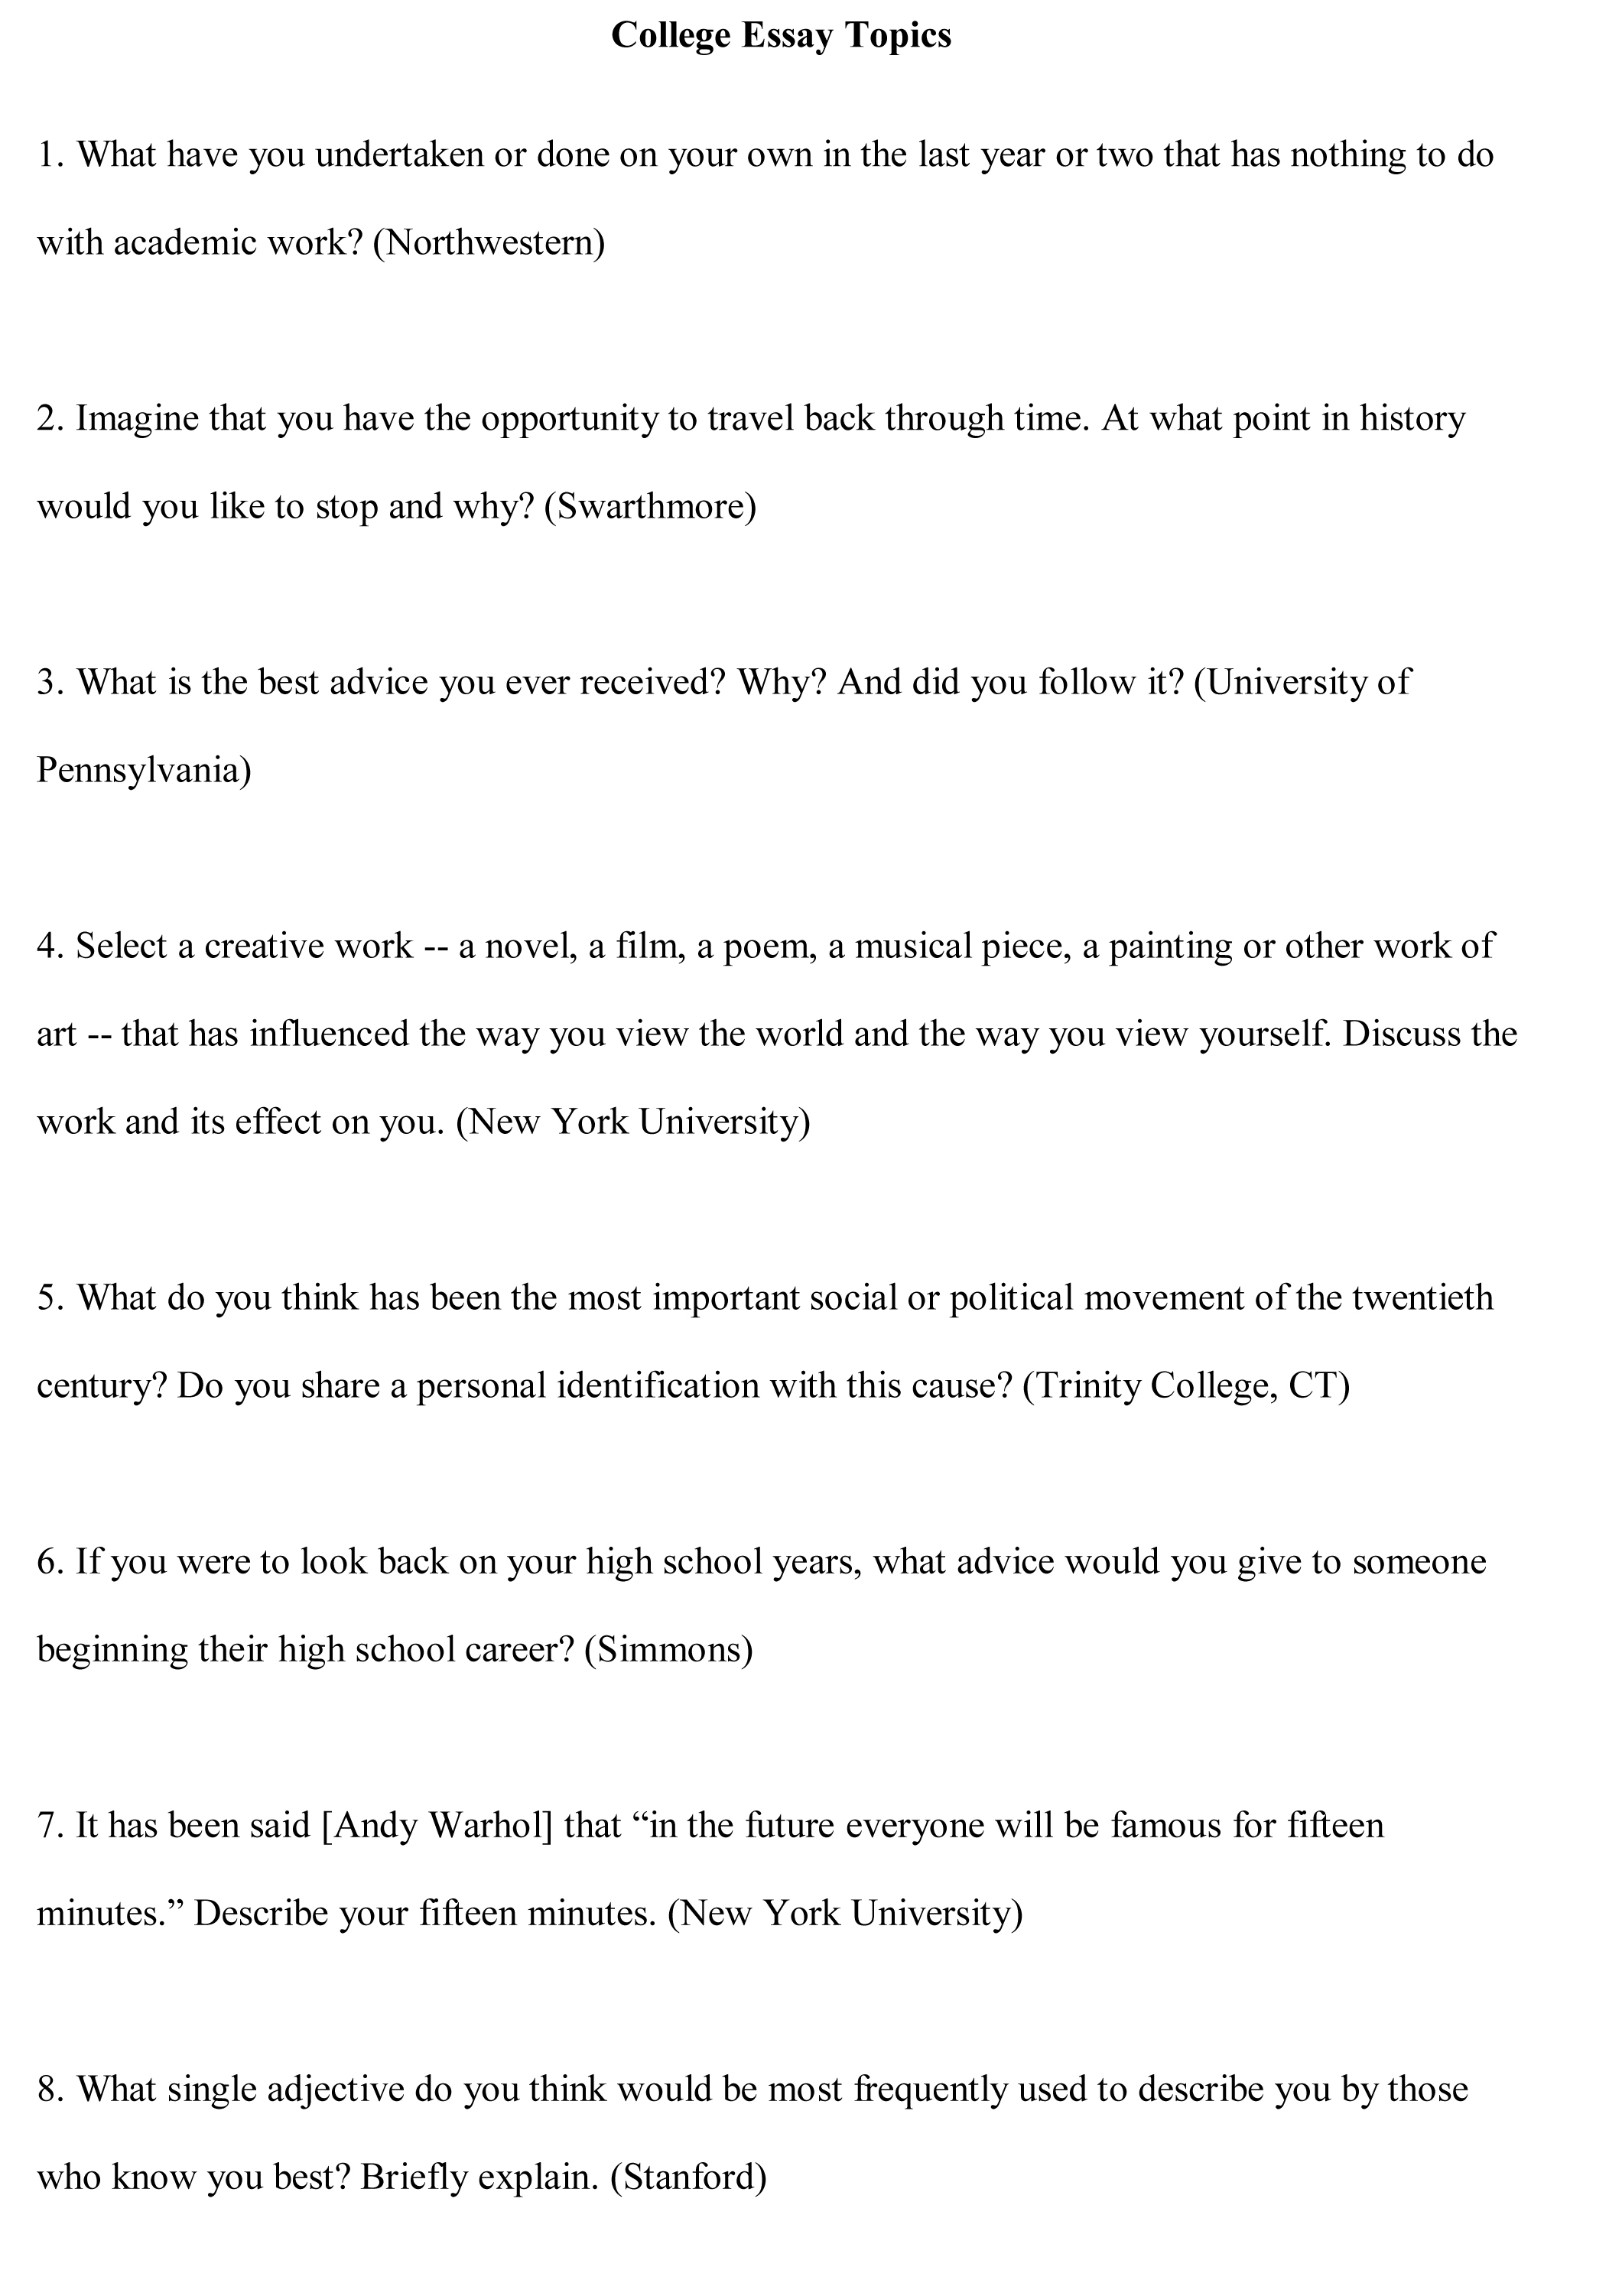 003 College Essay Topics Free Sample1 Example Topic Rare Ideas Admission Persuasive For Full